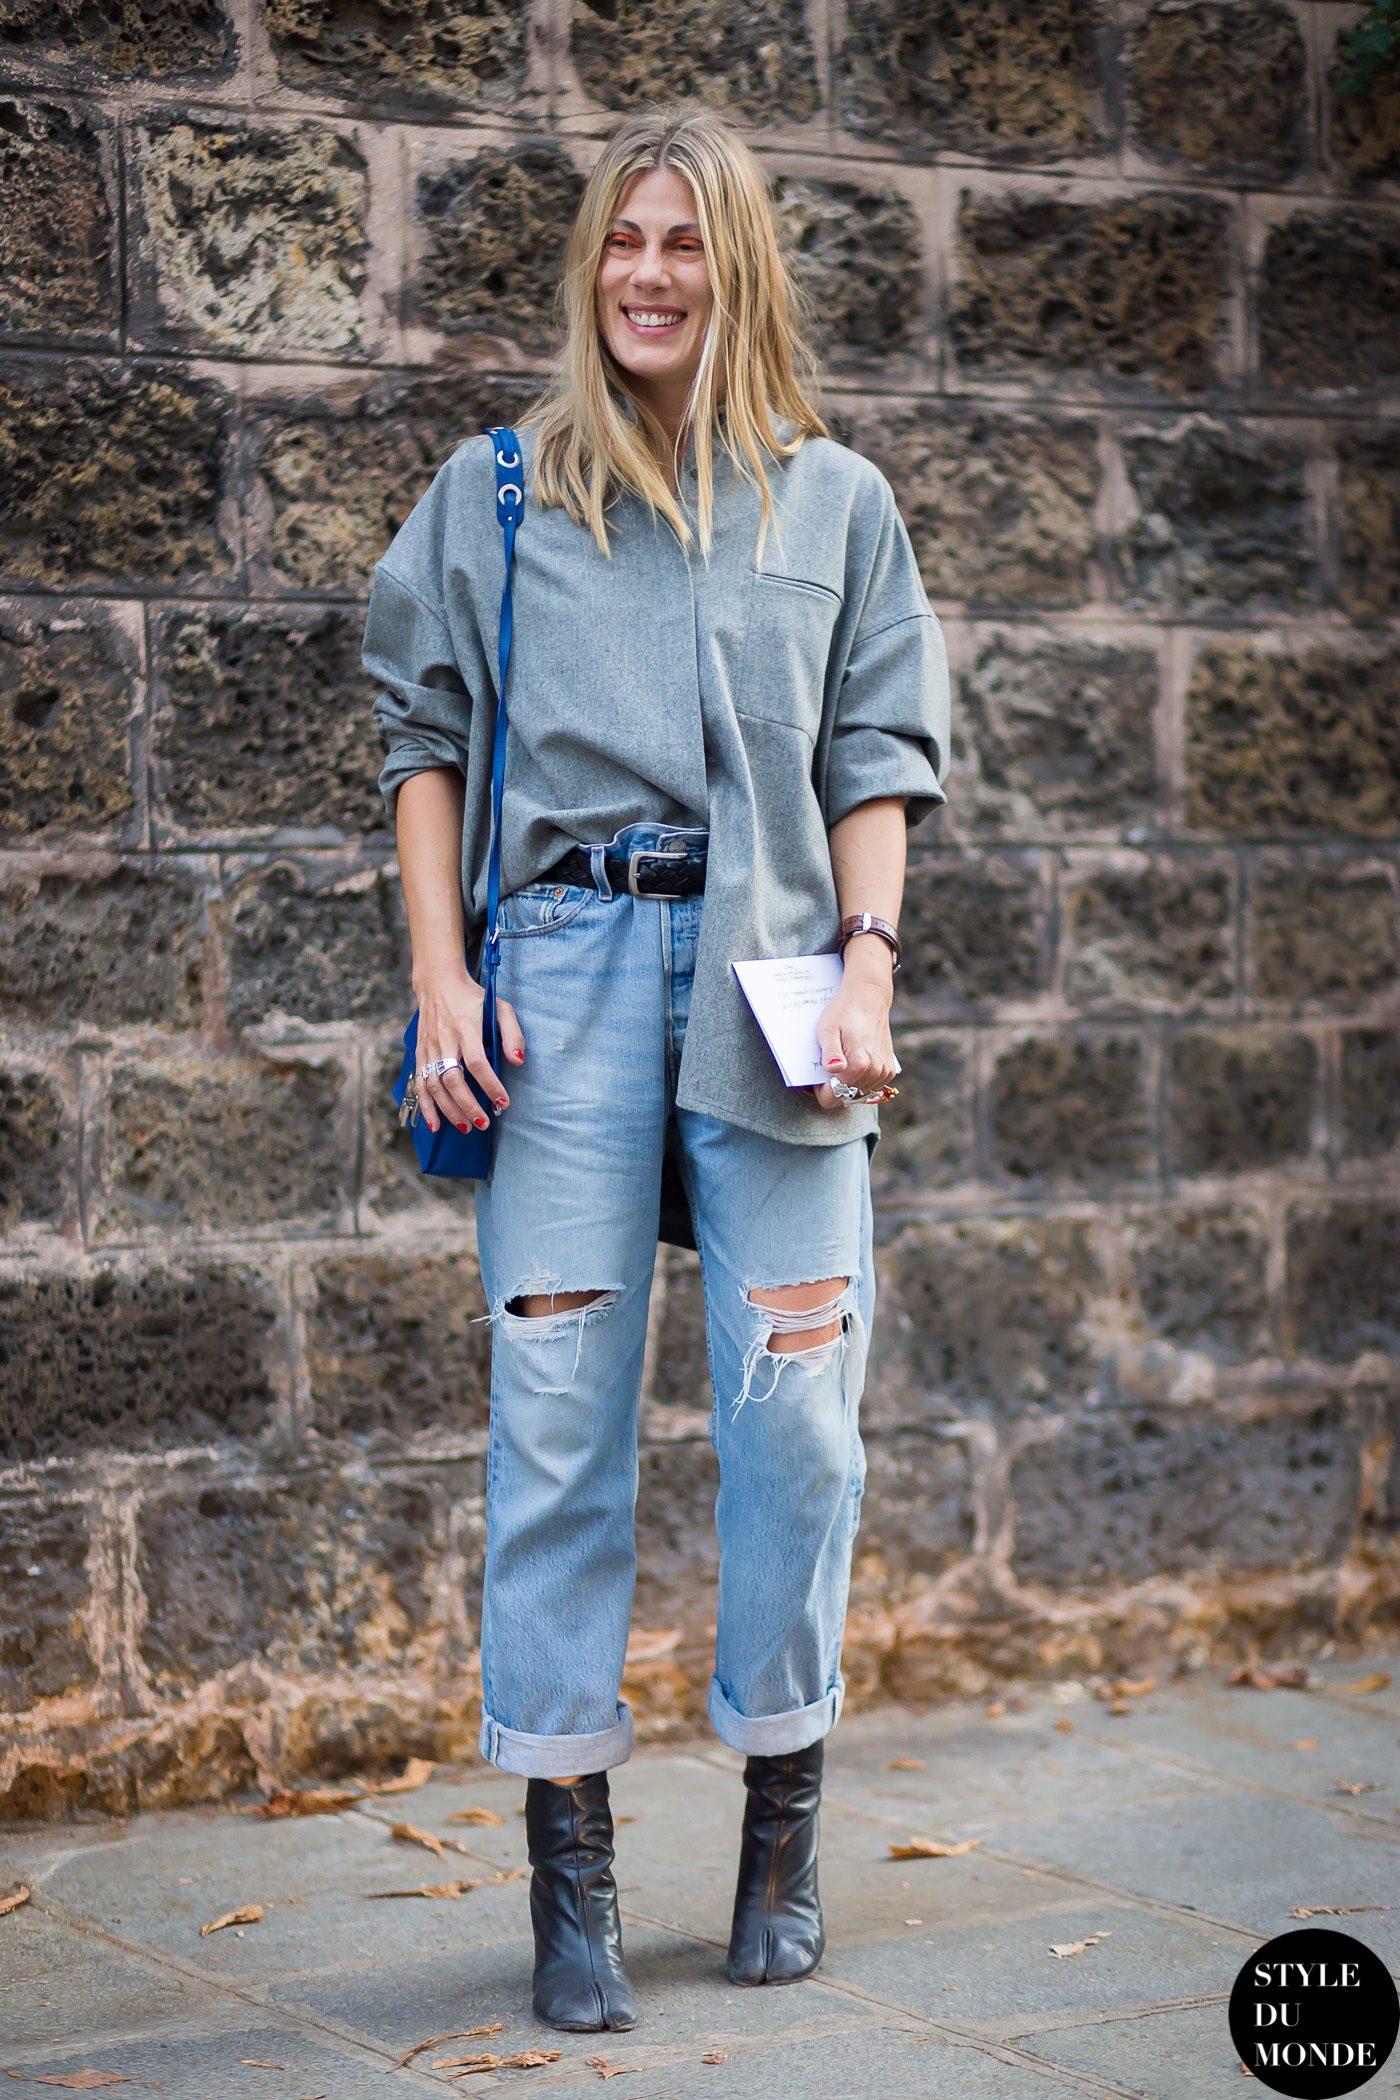 Natalie Hartley Street Style Street Fashion Streetsnaps by STYLEDUMONDE Street Style Fashion Blog